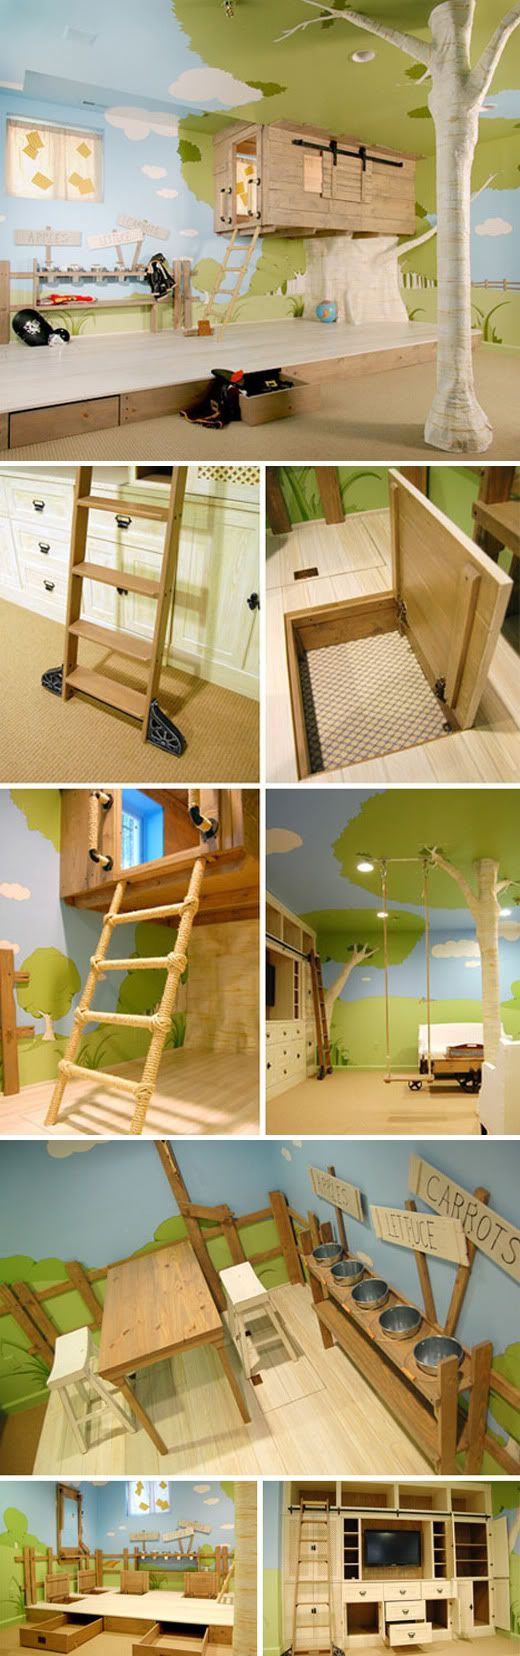 Salle de jeux pour infants. Traditionally Modern Designs: Why didn't I have a playroom like this?